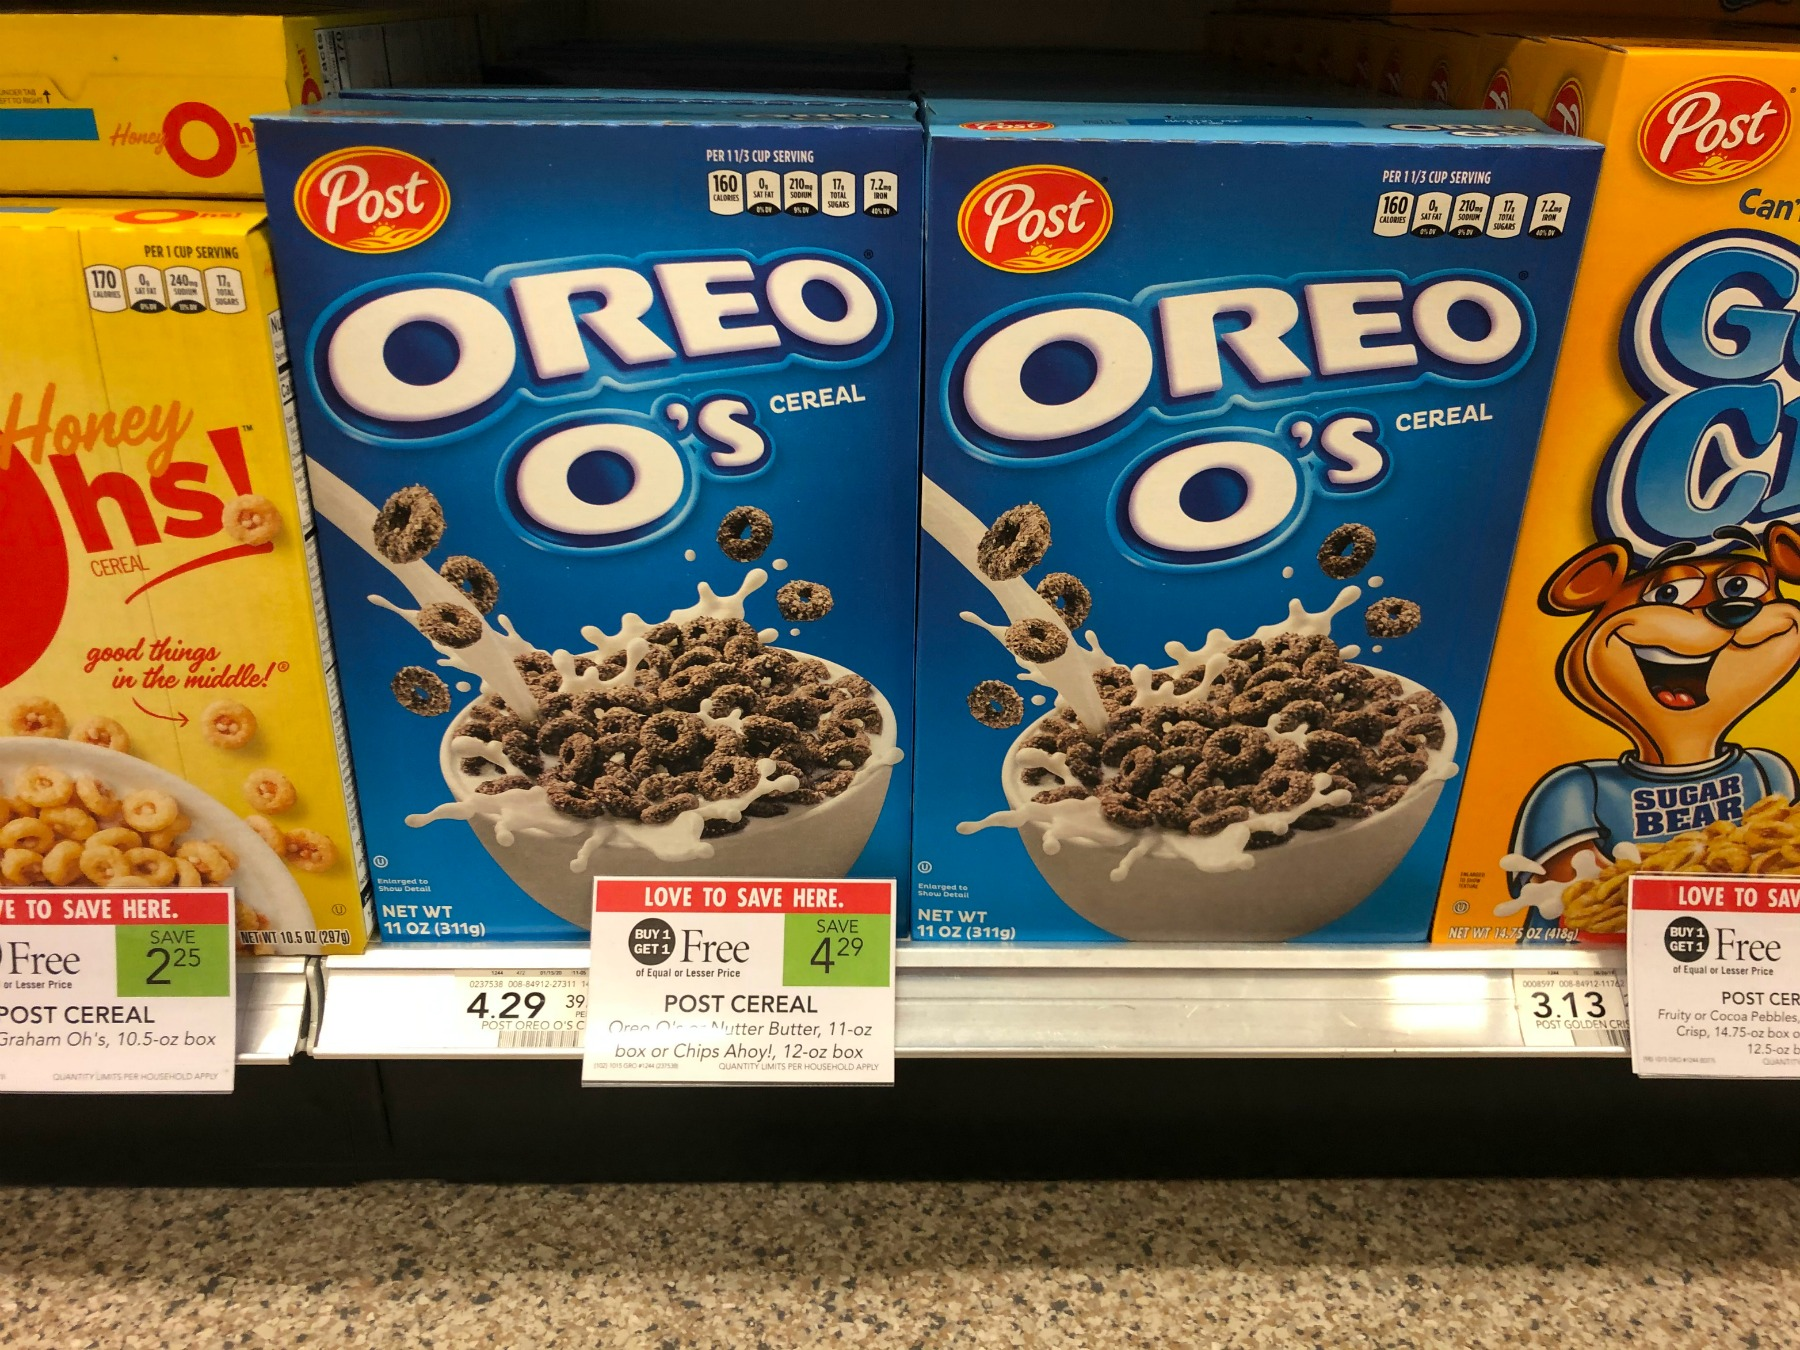 Post Oreo O's Cereal Just $1.65 At Publix on I Heart Publix 3